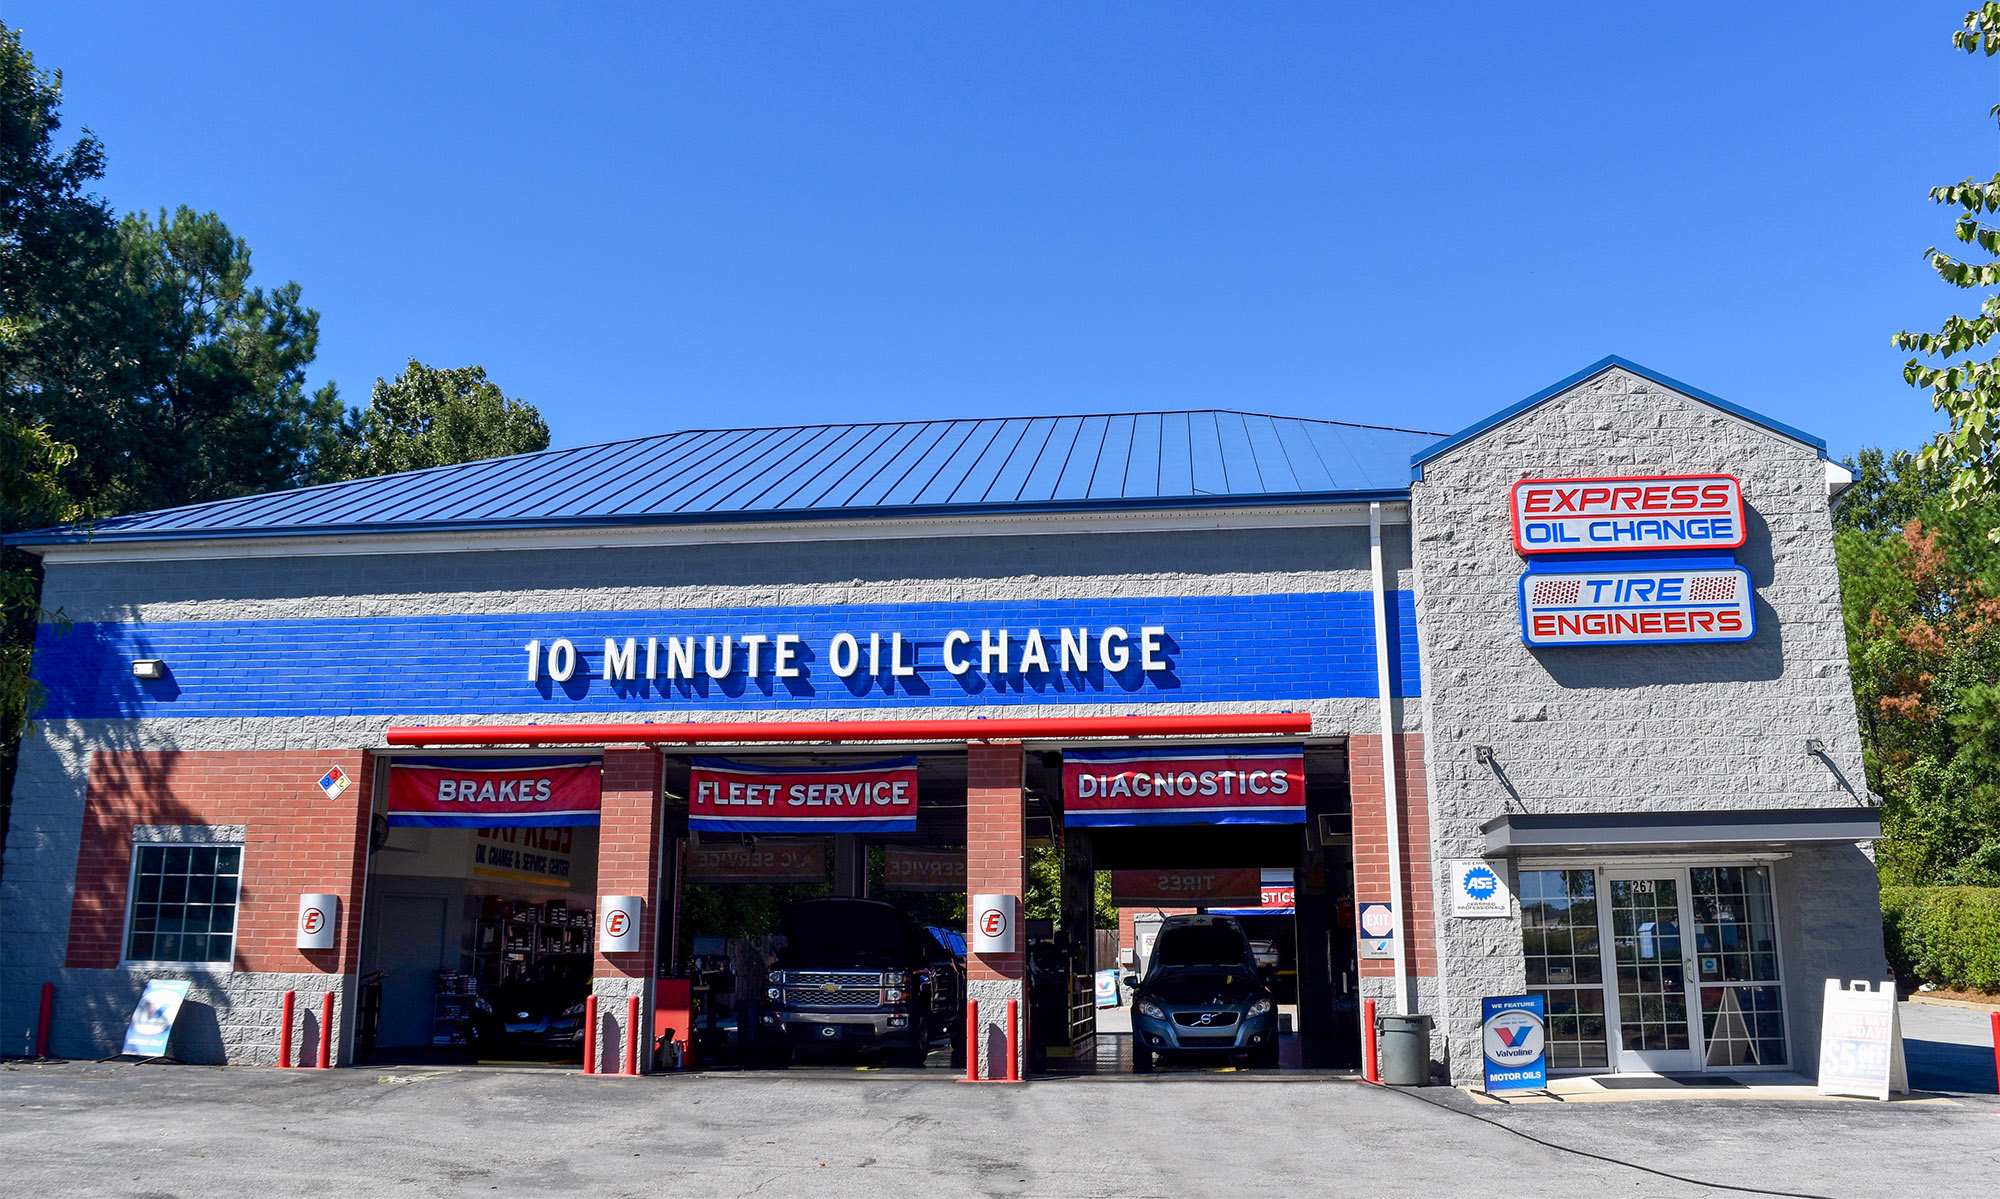 Express Oil Change & Tire Engineers Columbia, SC - Harbison Boulevard store